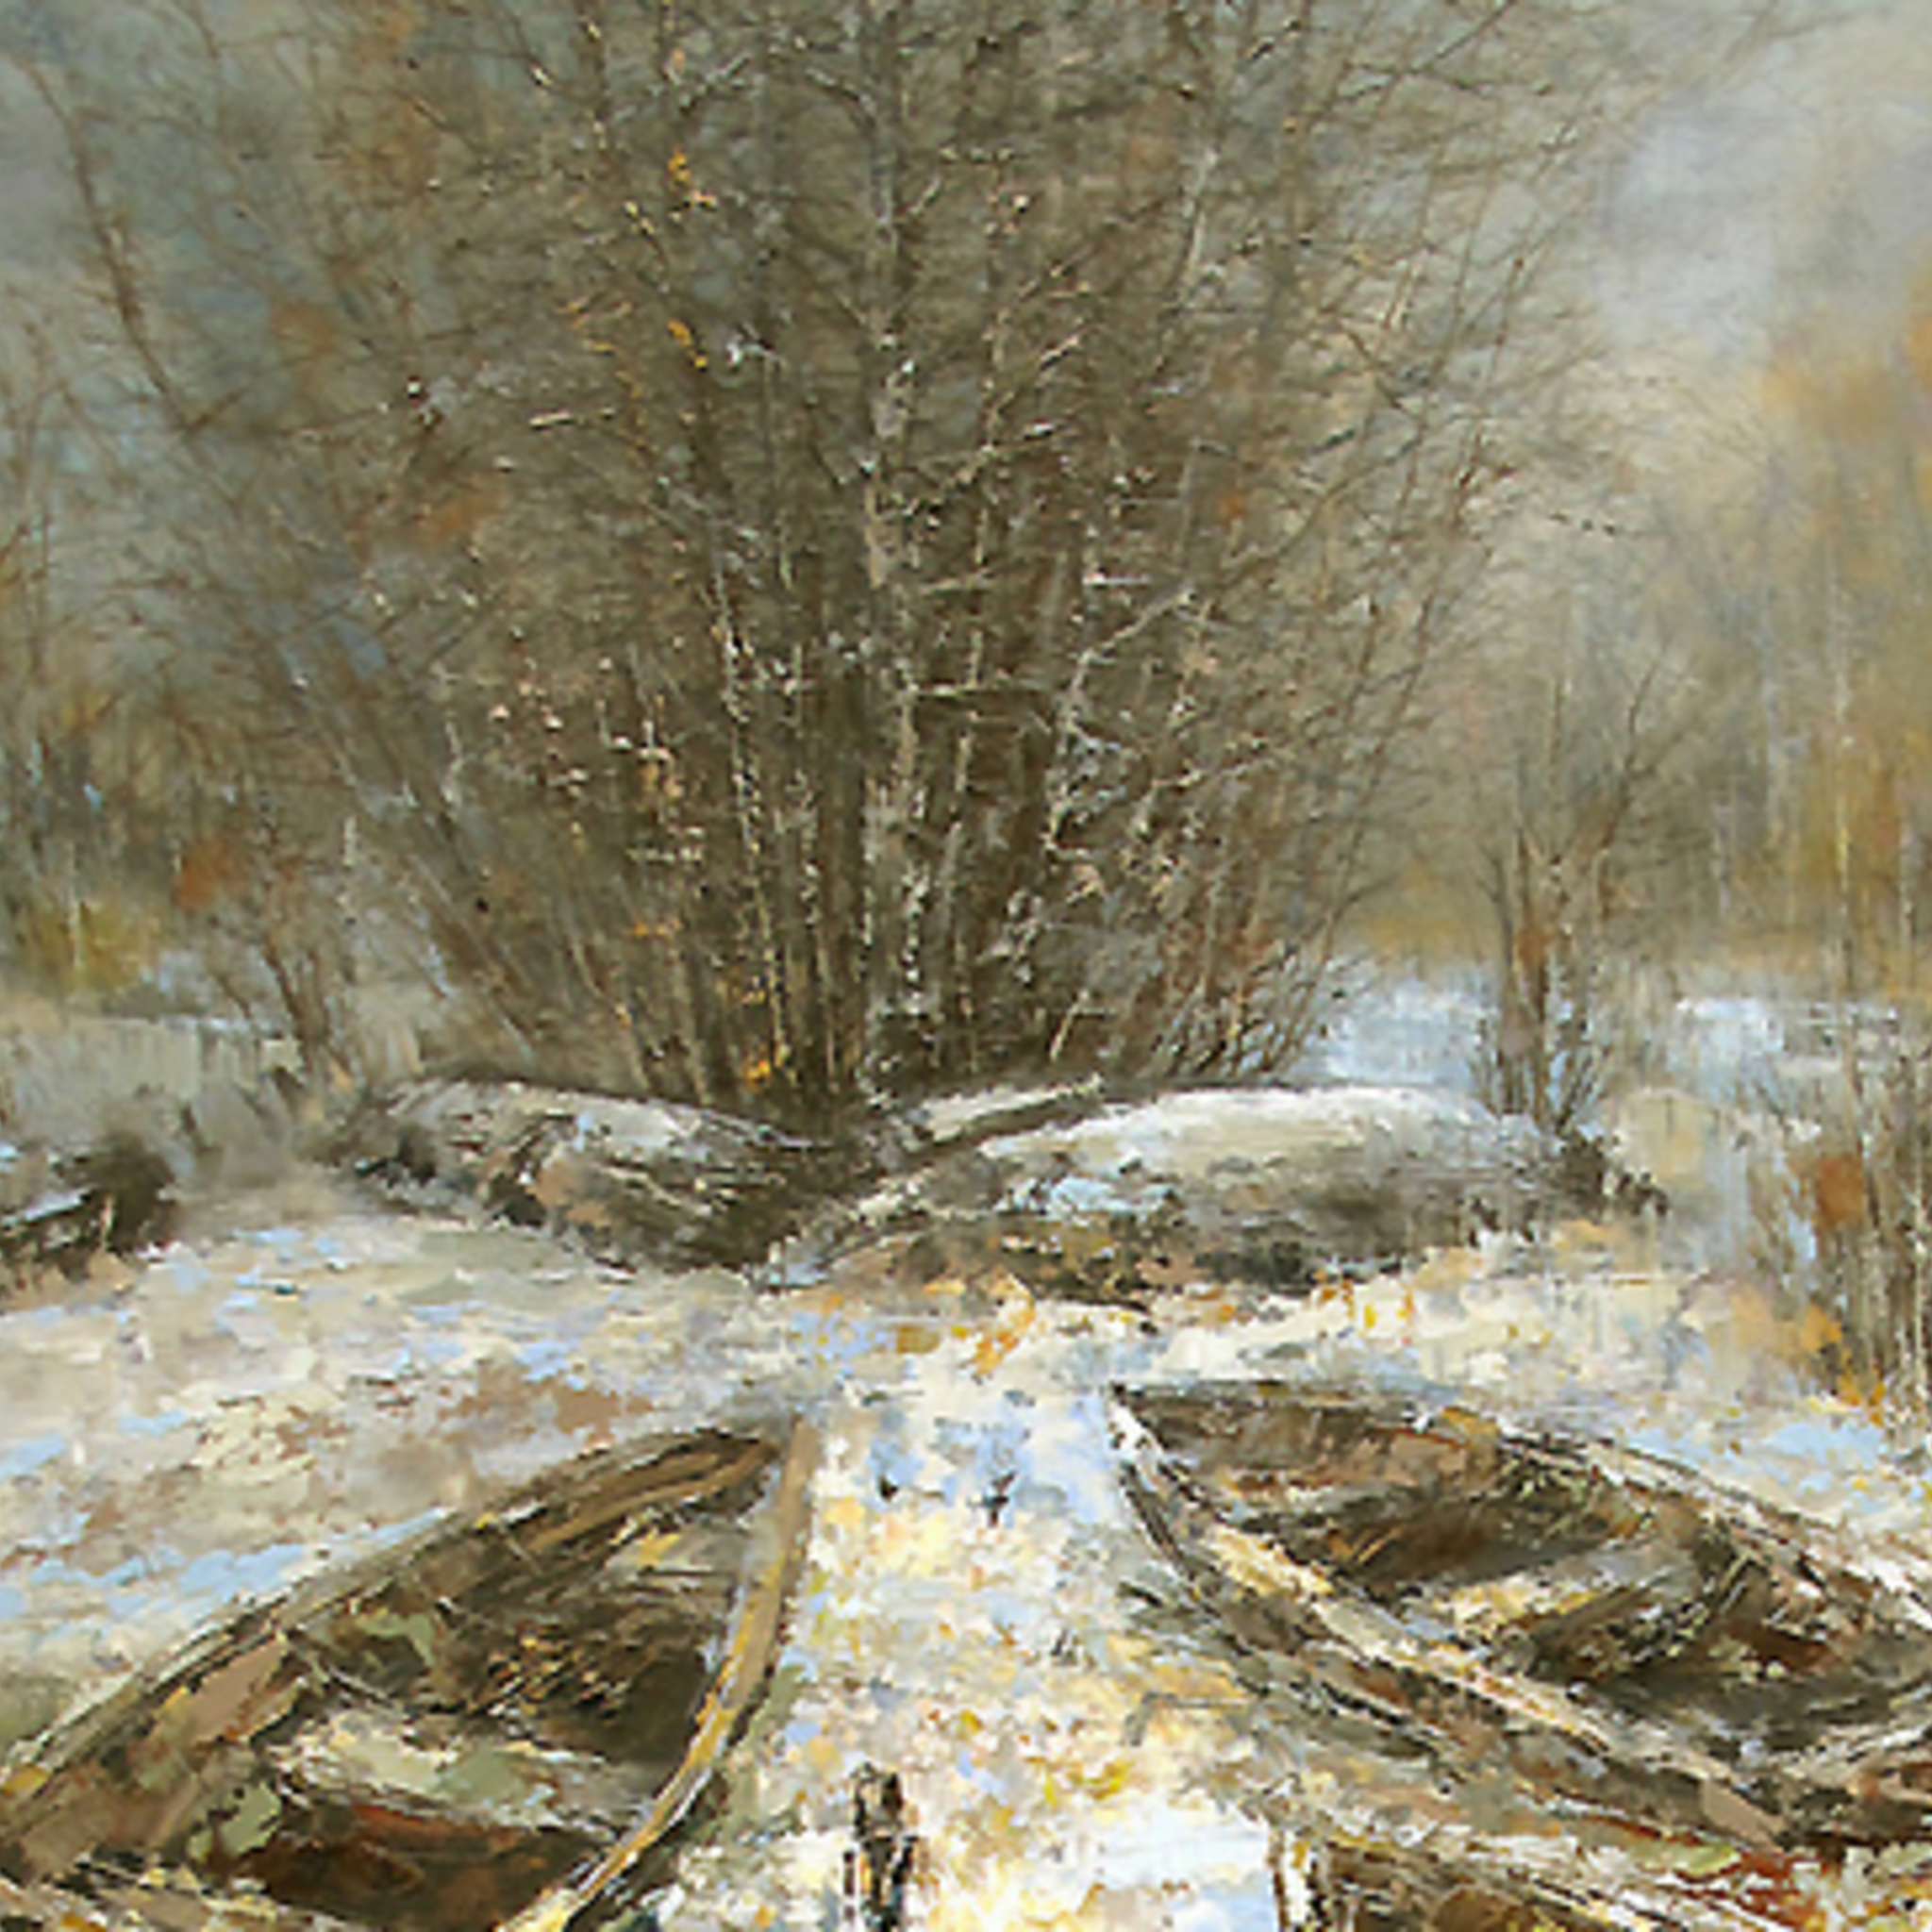 Exhibition of paintings by Dmitry Kustanovich Spatial Realism